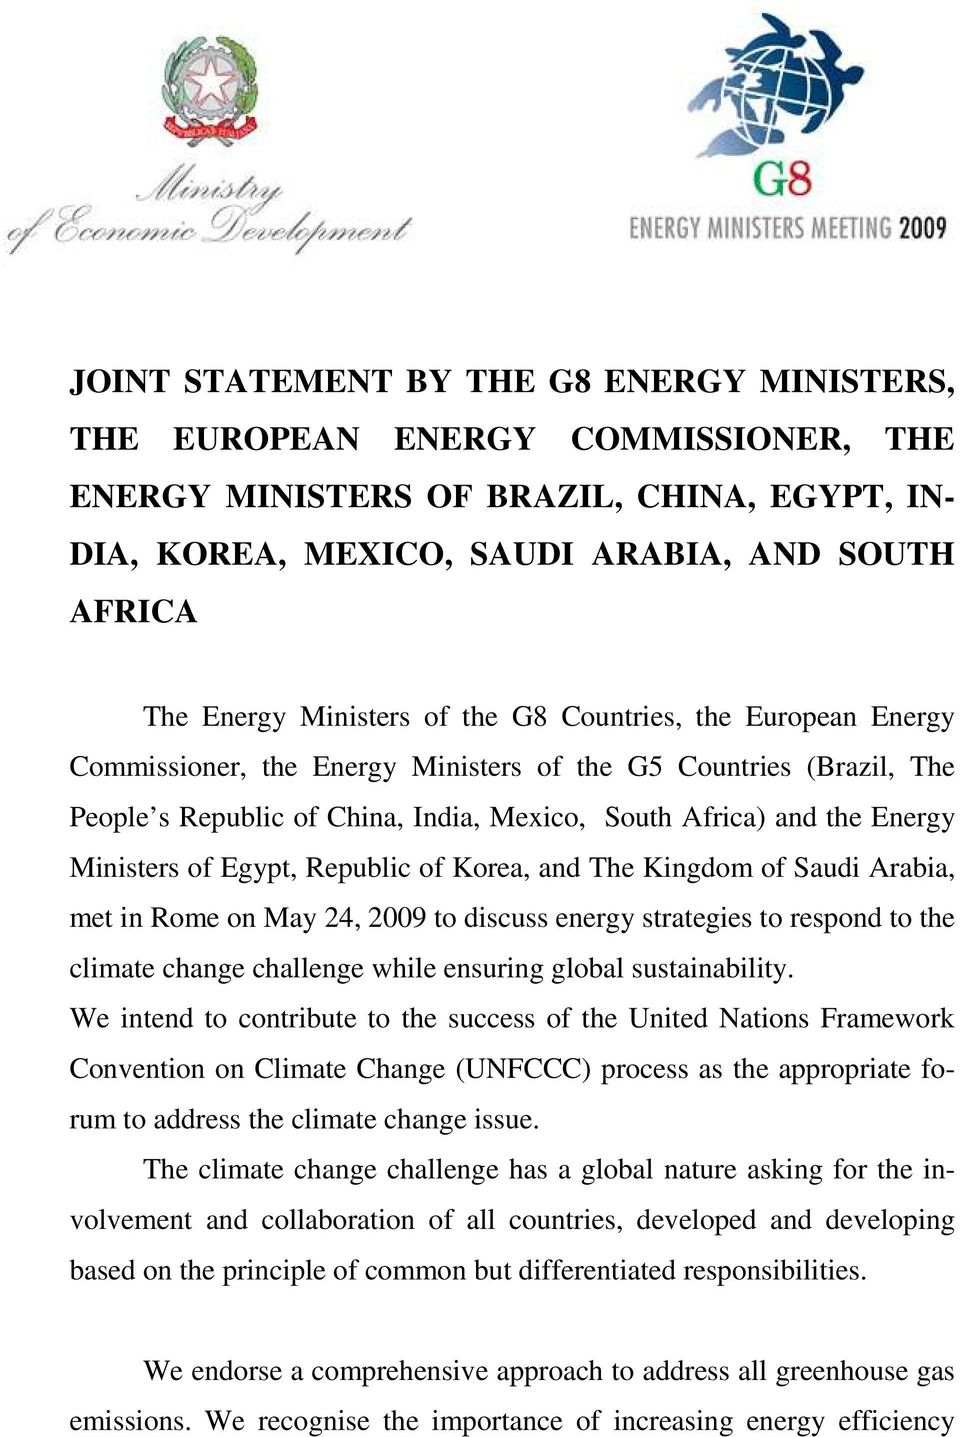 Egypt, Republic of Korea, and The Kingdom of Saudi Arabia, met in Rome on May 24, 2009 to discuss energy strategies to respond to the climate change challenge while ensuring global sustainability.